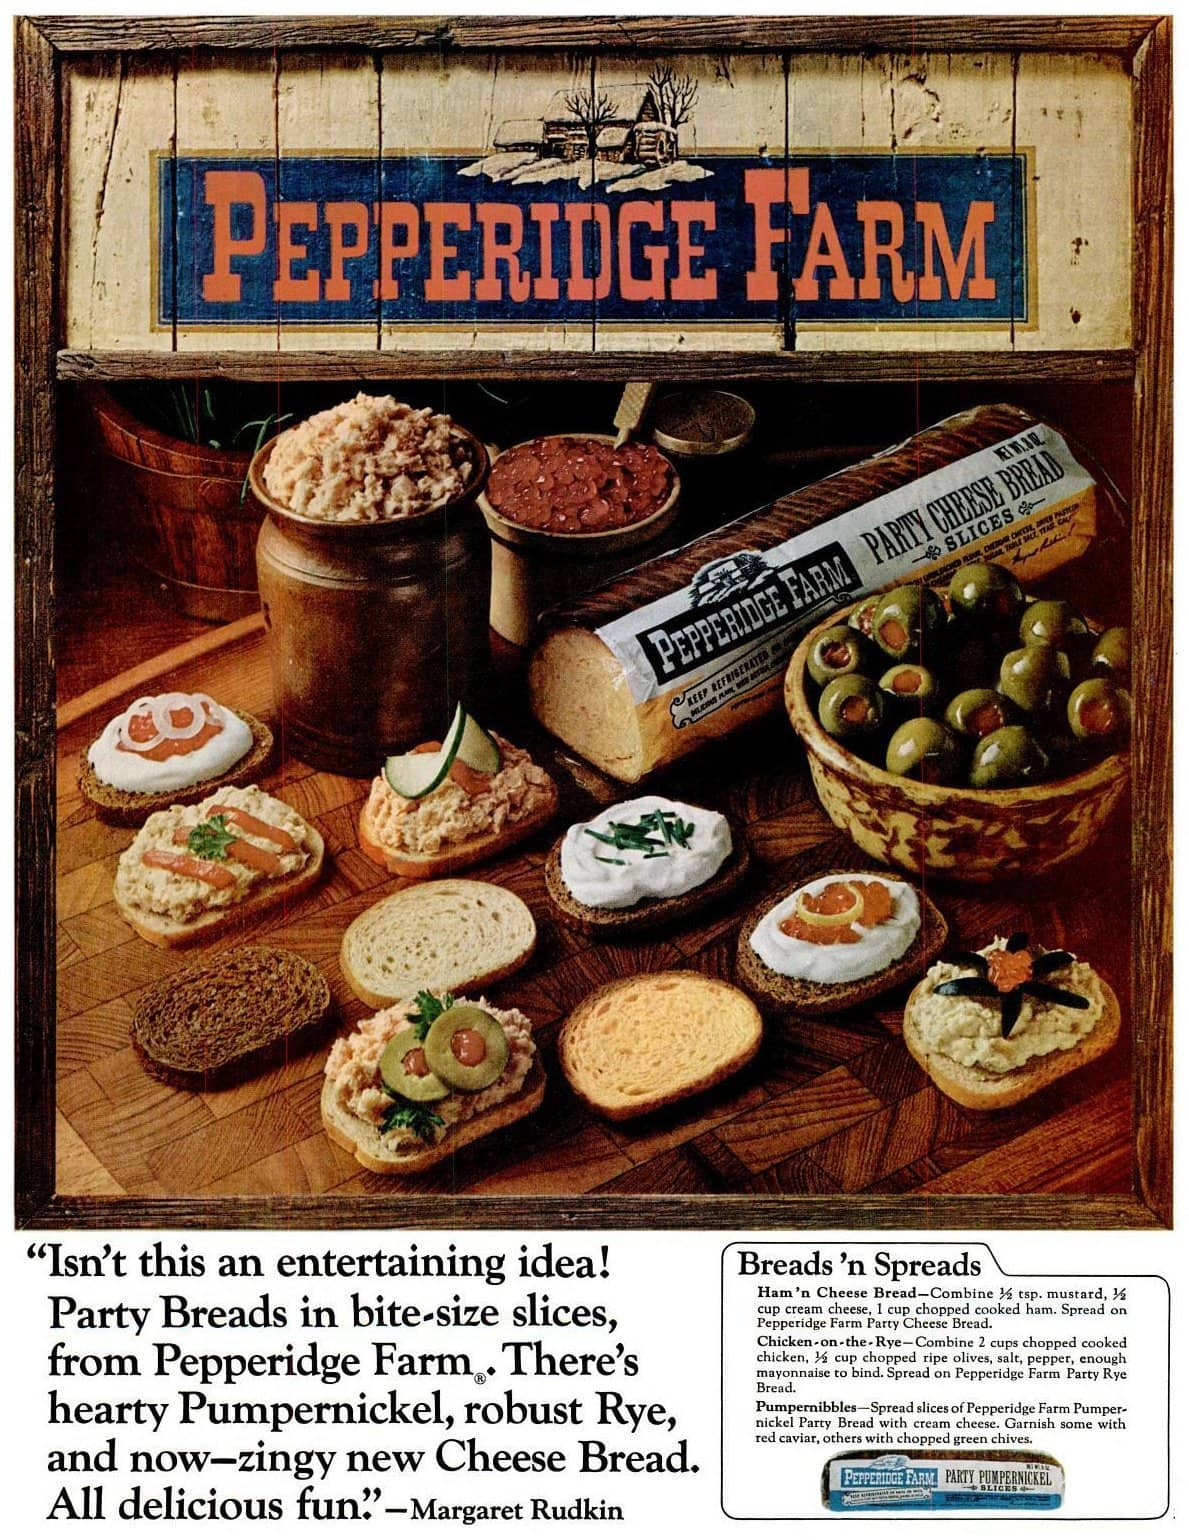 Pepperidge Farm Party Party Cheese Bread slices (1966)